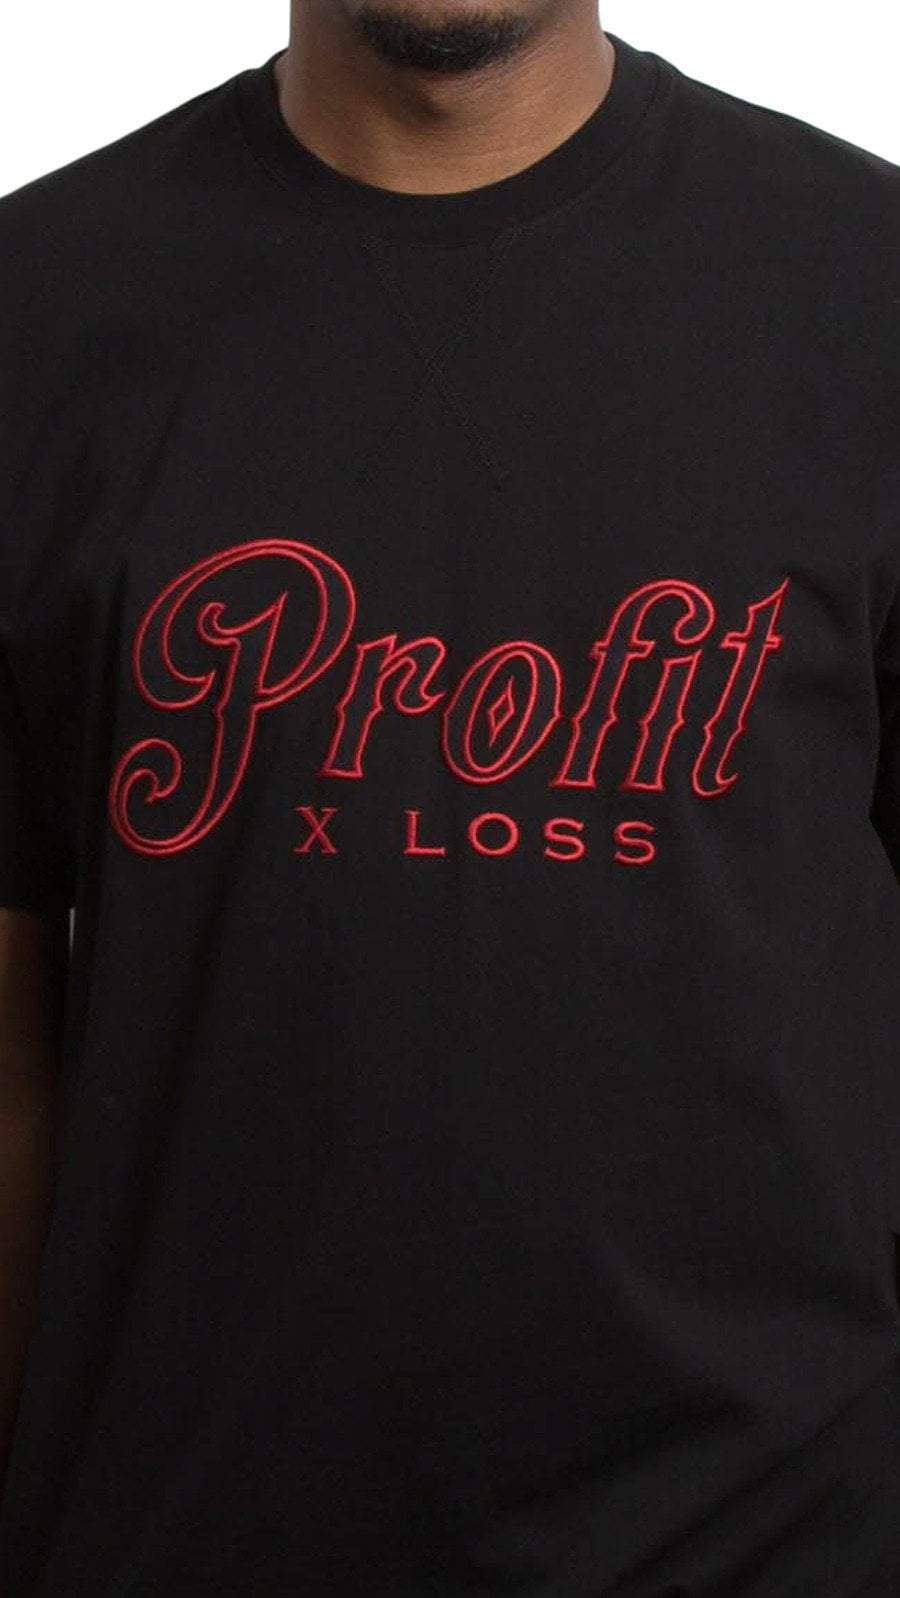 profitxloss.com Shirts Select Size / Black/ Red SCRIPT - TSHIRT (RED)